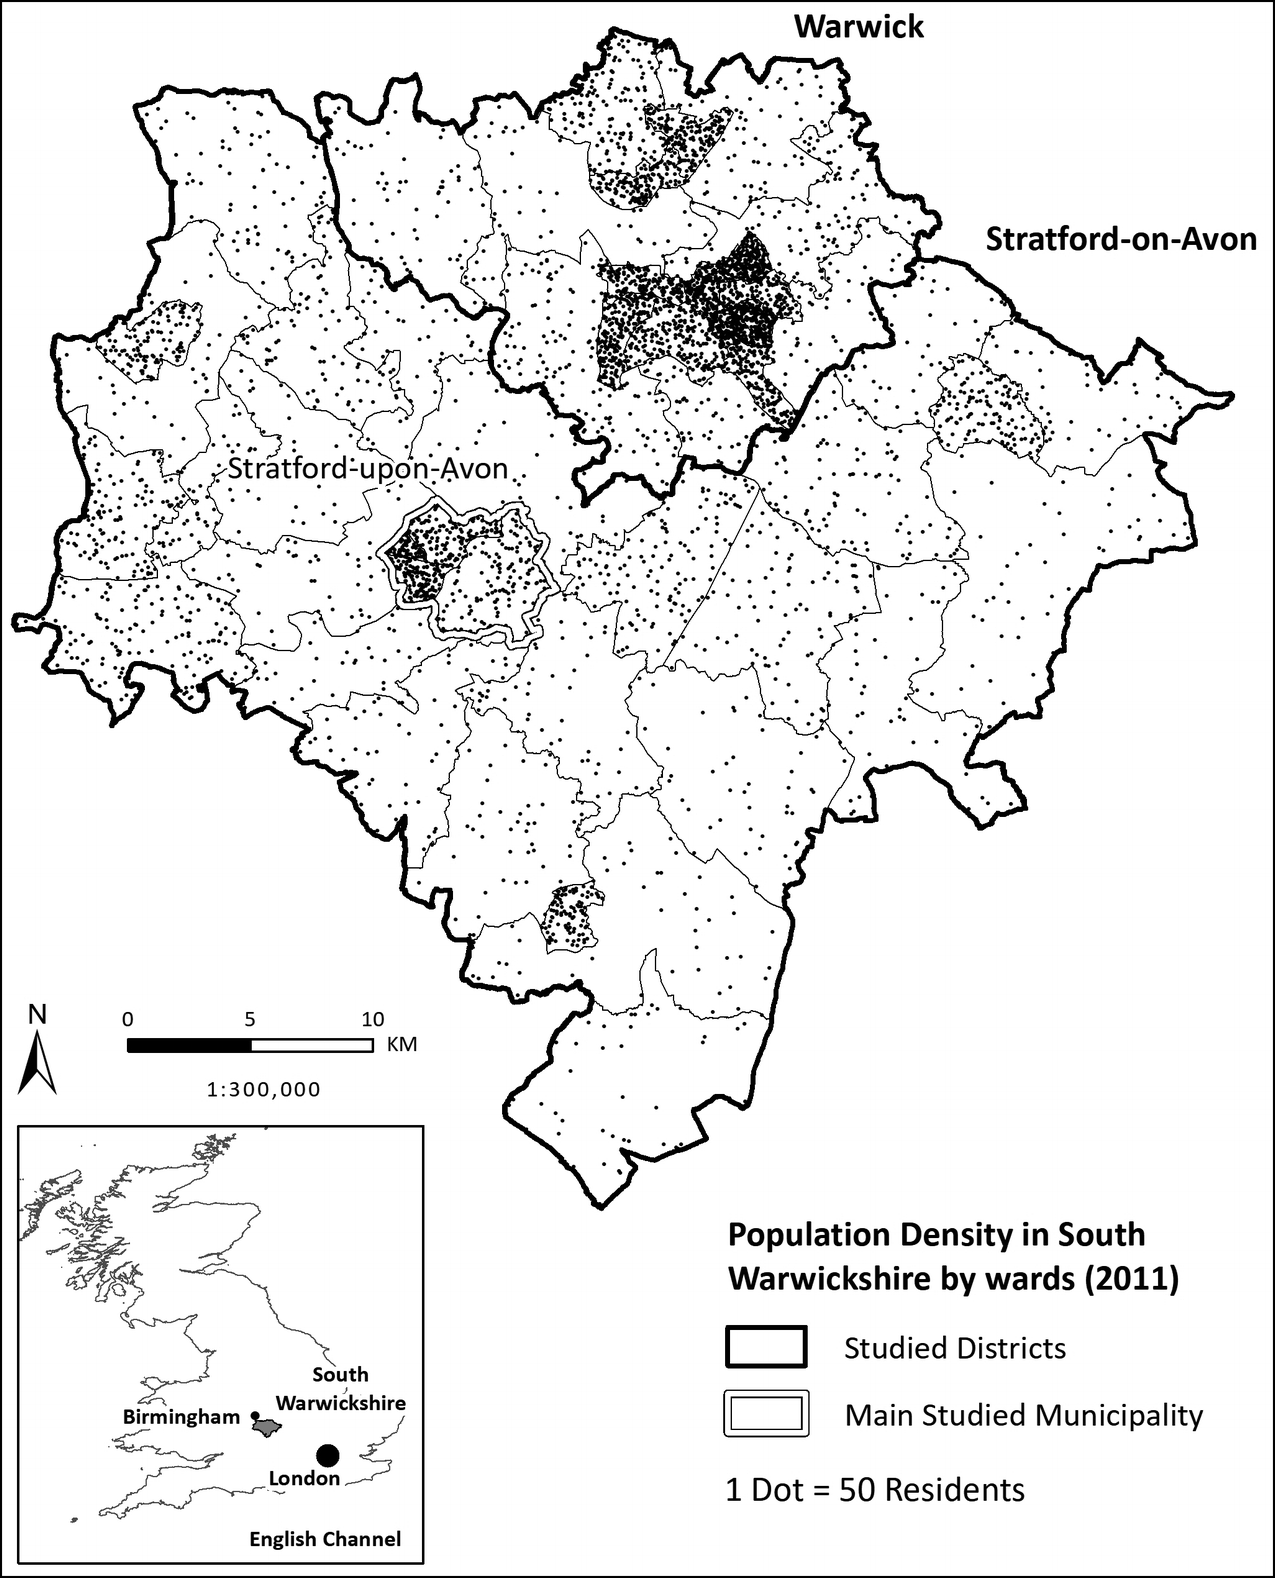 North-West Europe: Comparing the Cases of South Warwickshire